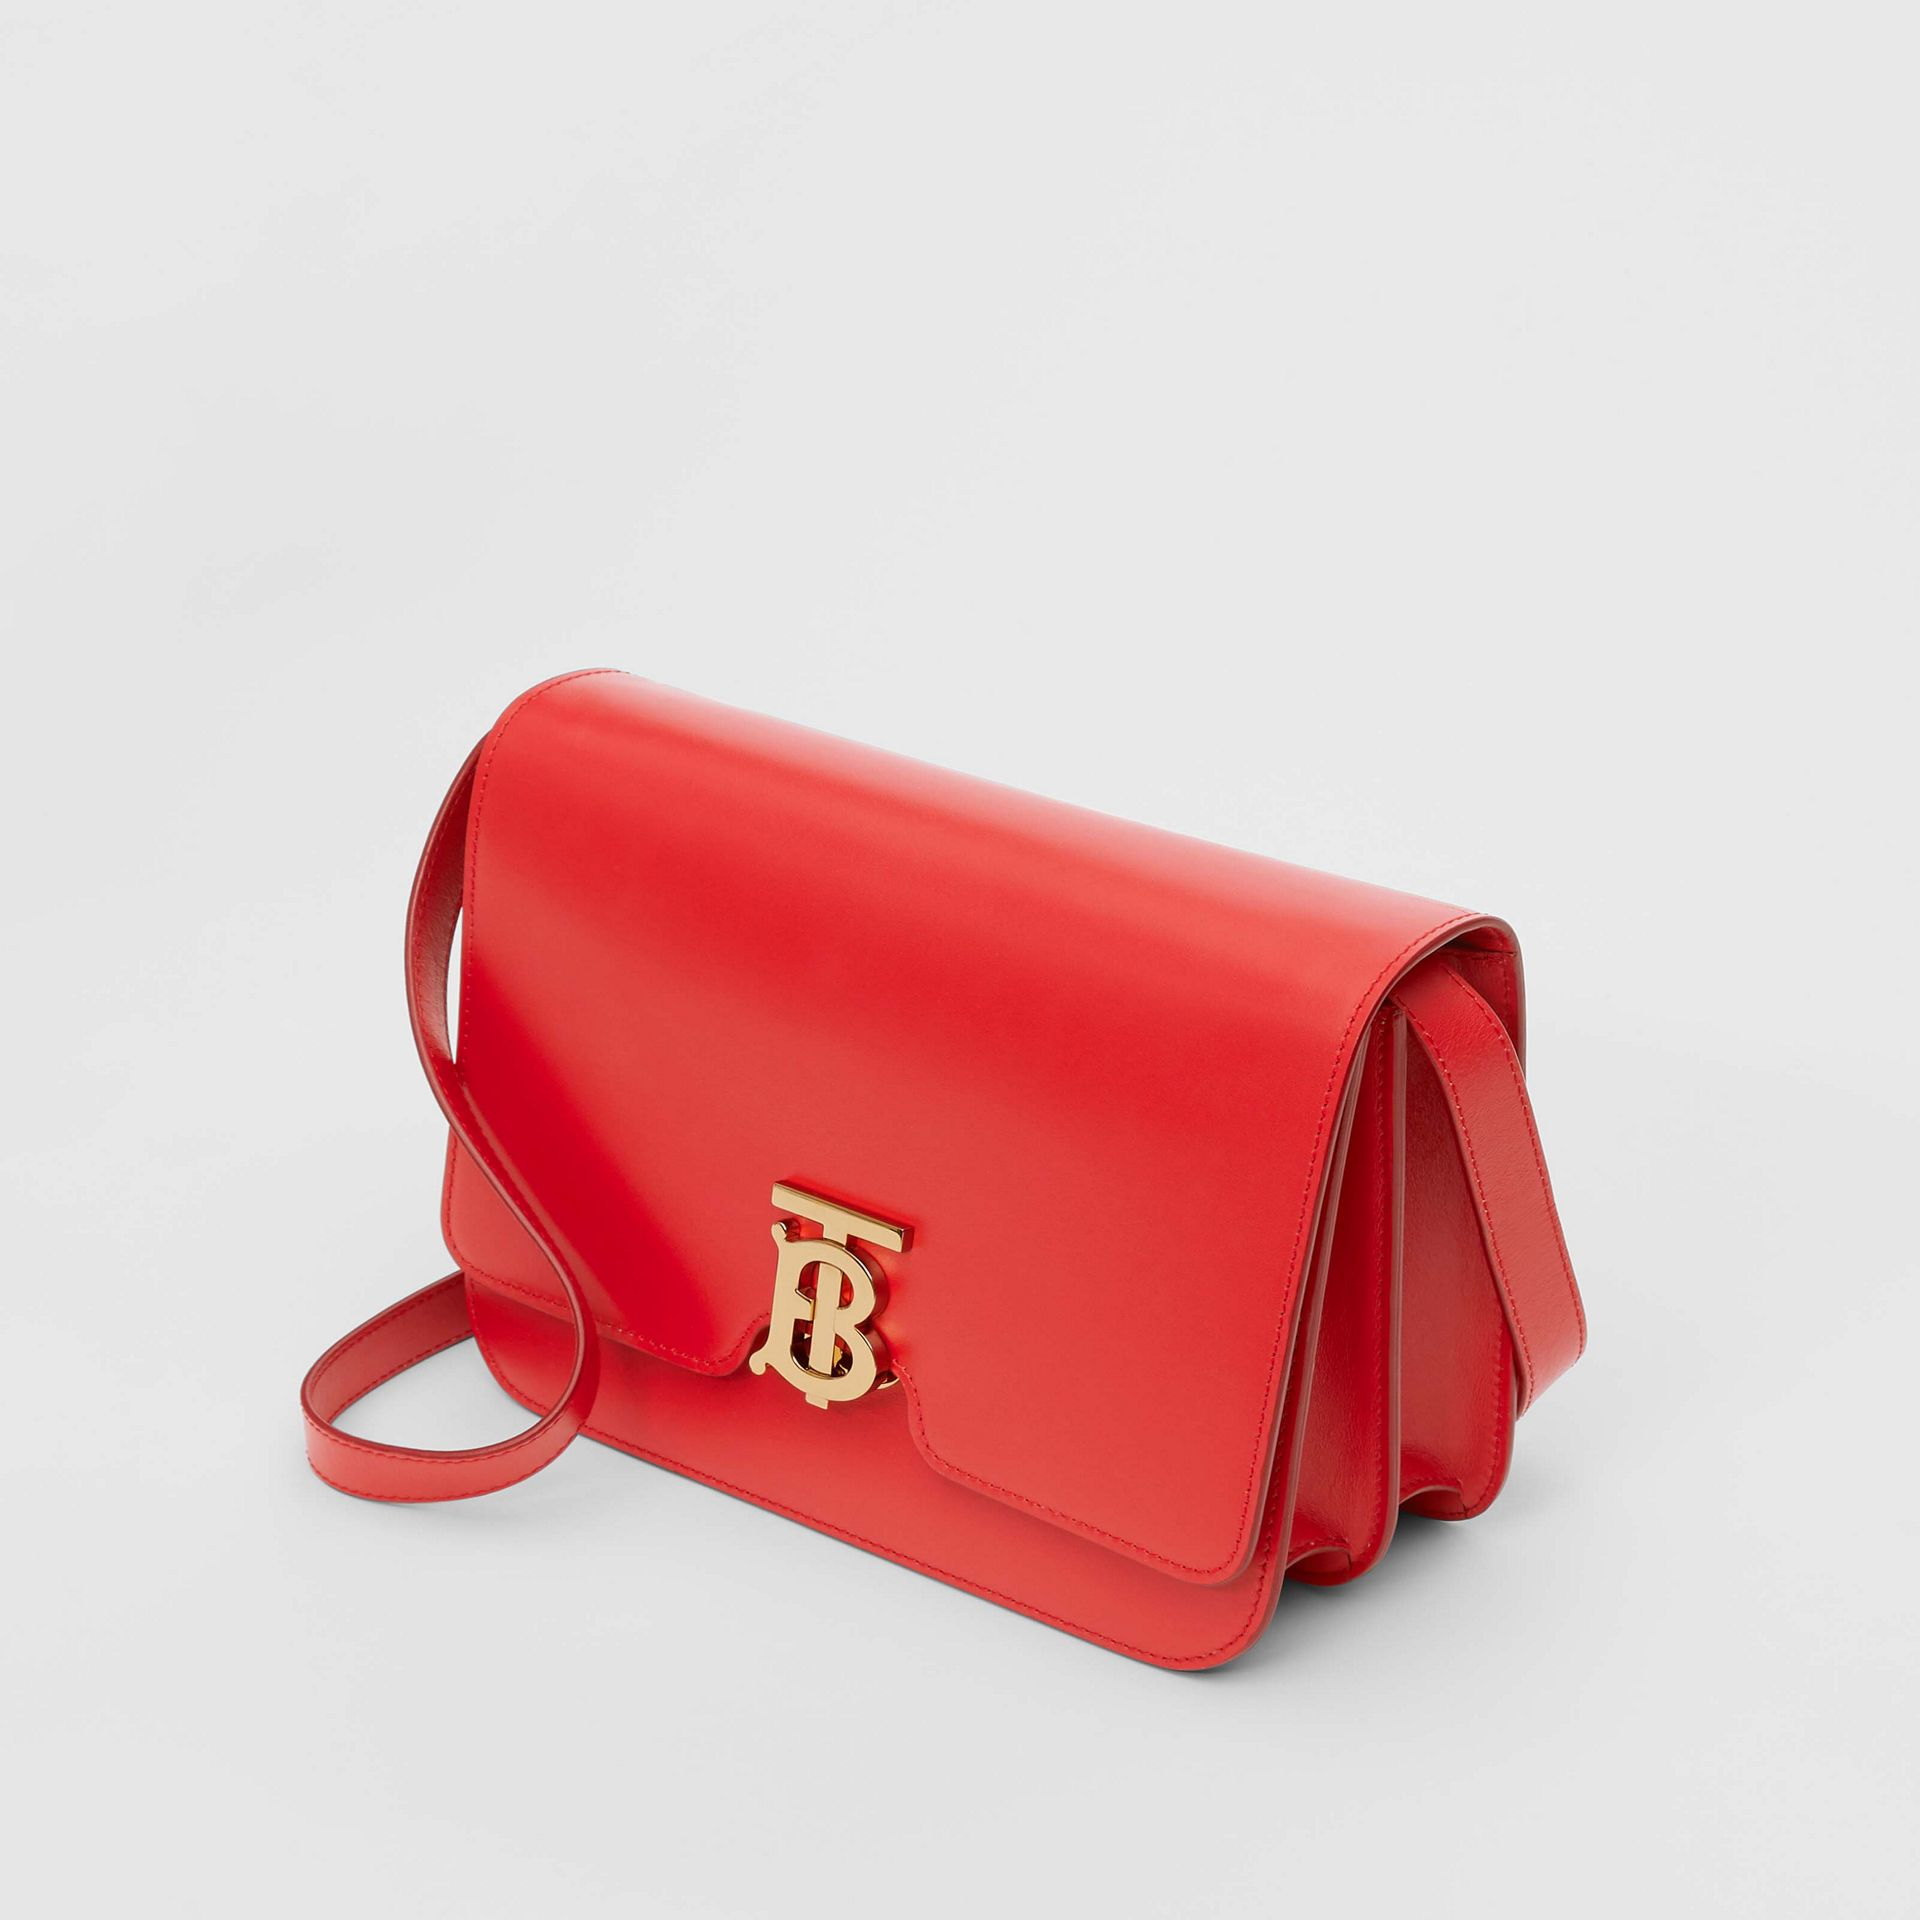 Medium Leather TB Bag in Bright Red - Women | Burberry United States - gallery image 3